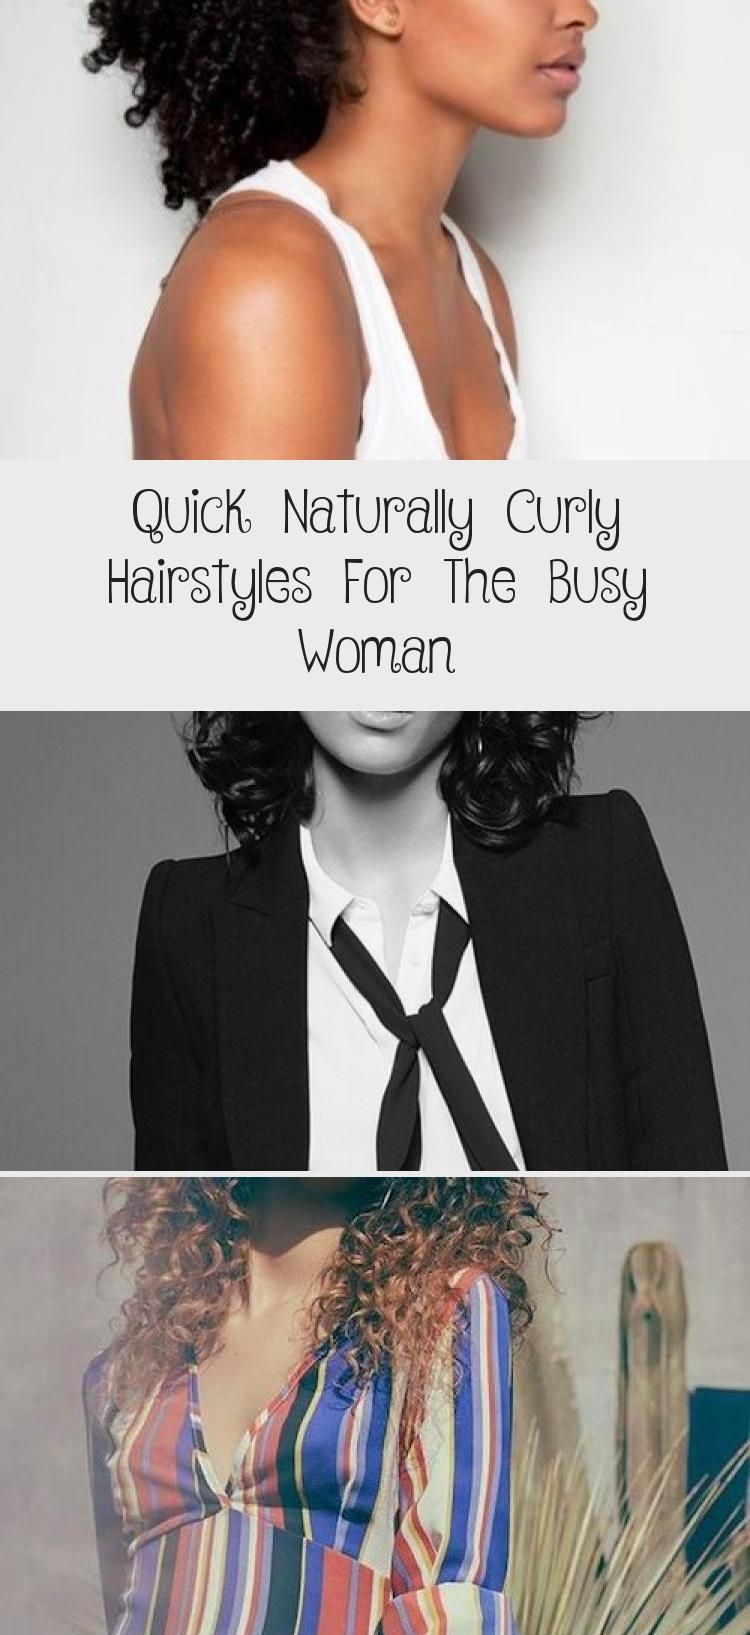 Quick Naturally Curly Hairstyles For The Busy Woman – Hairstyle